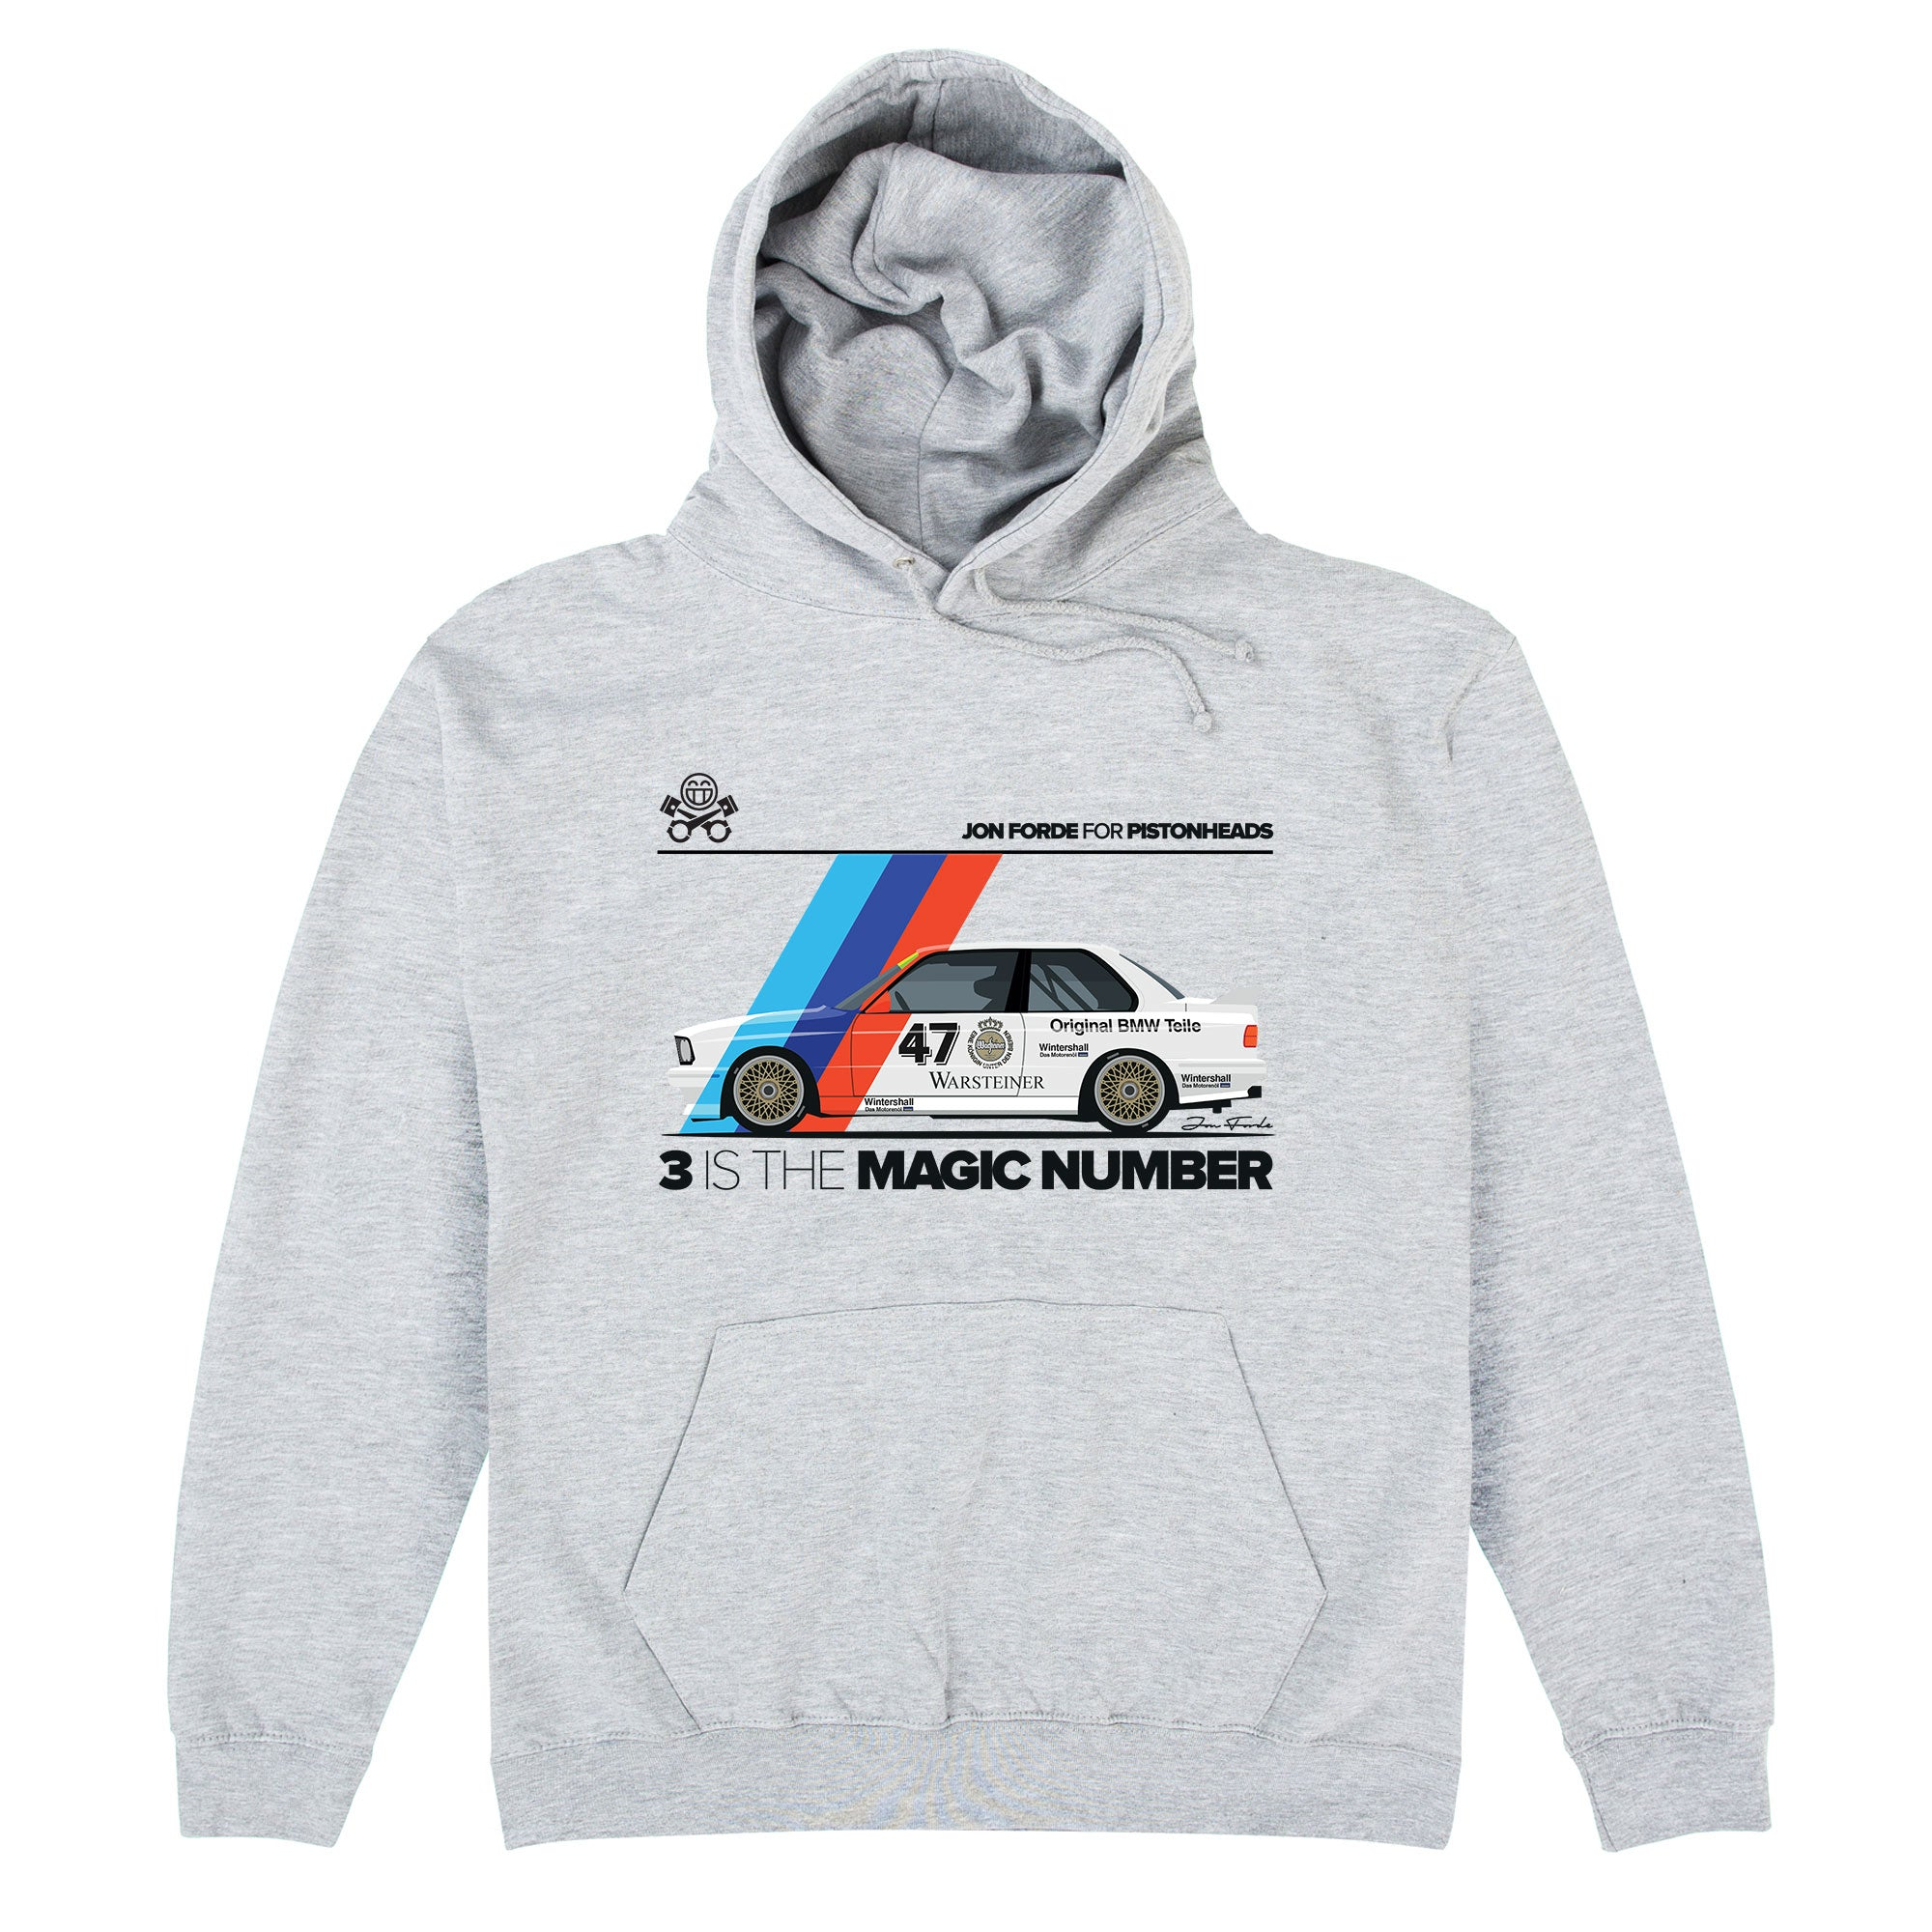 CHEAP Jon Forde 3 Is The Magic Number Hoodie 25722908239 – Clothing Accessories